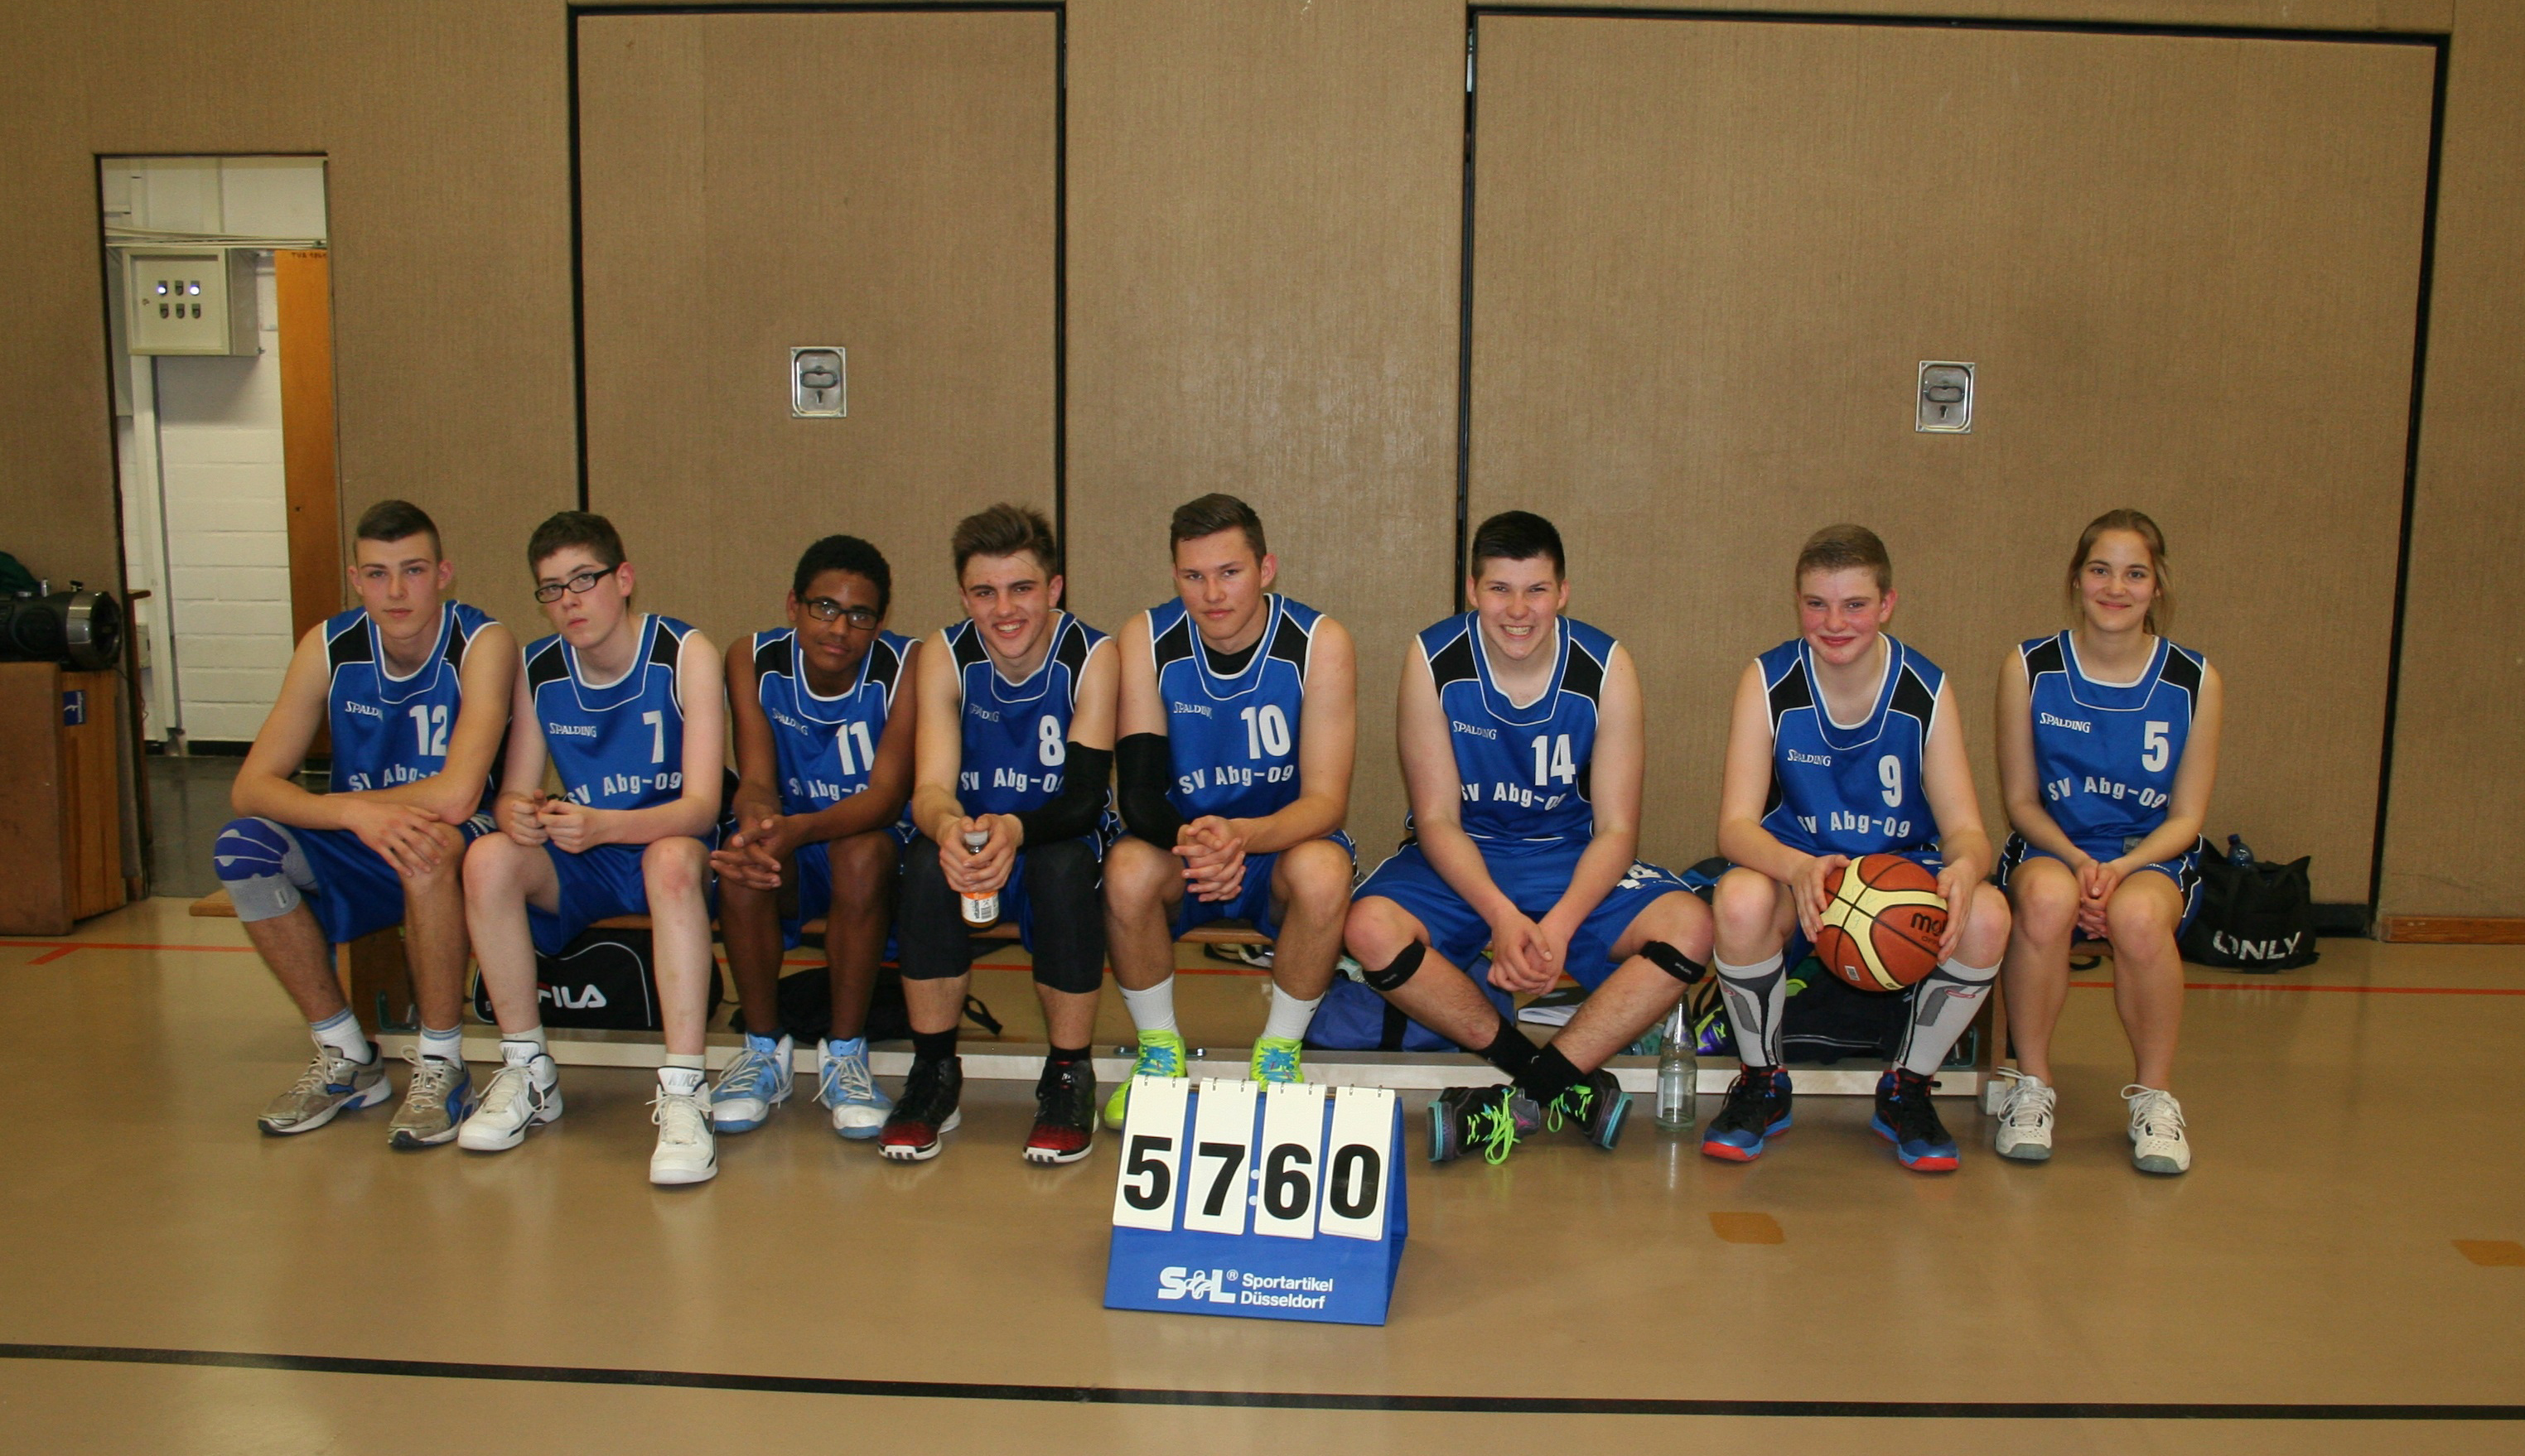 SVA09BasketballJun